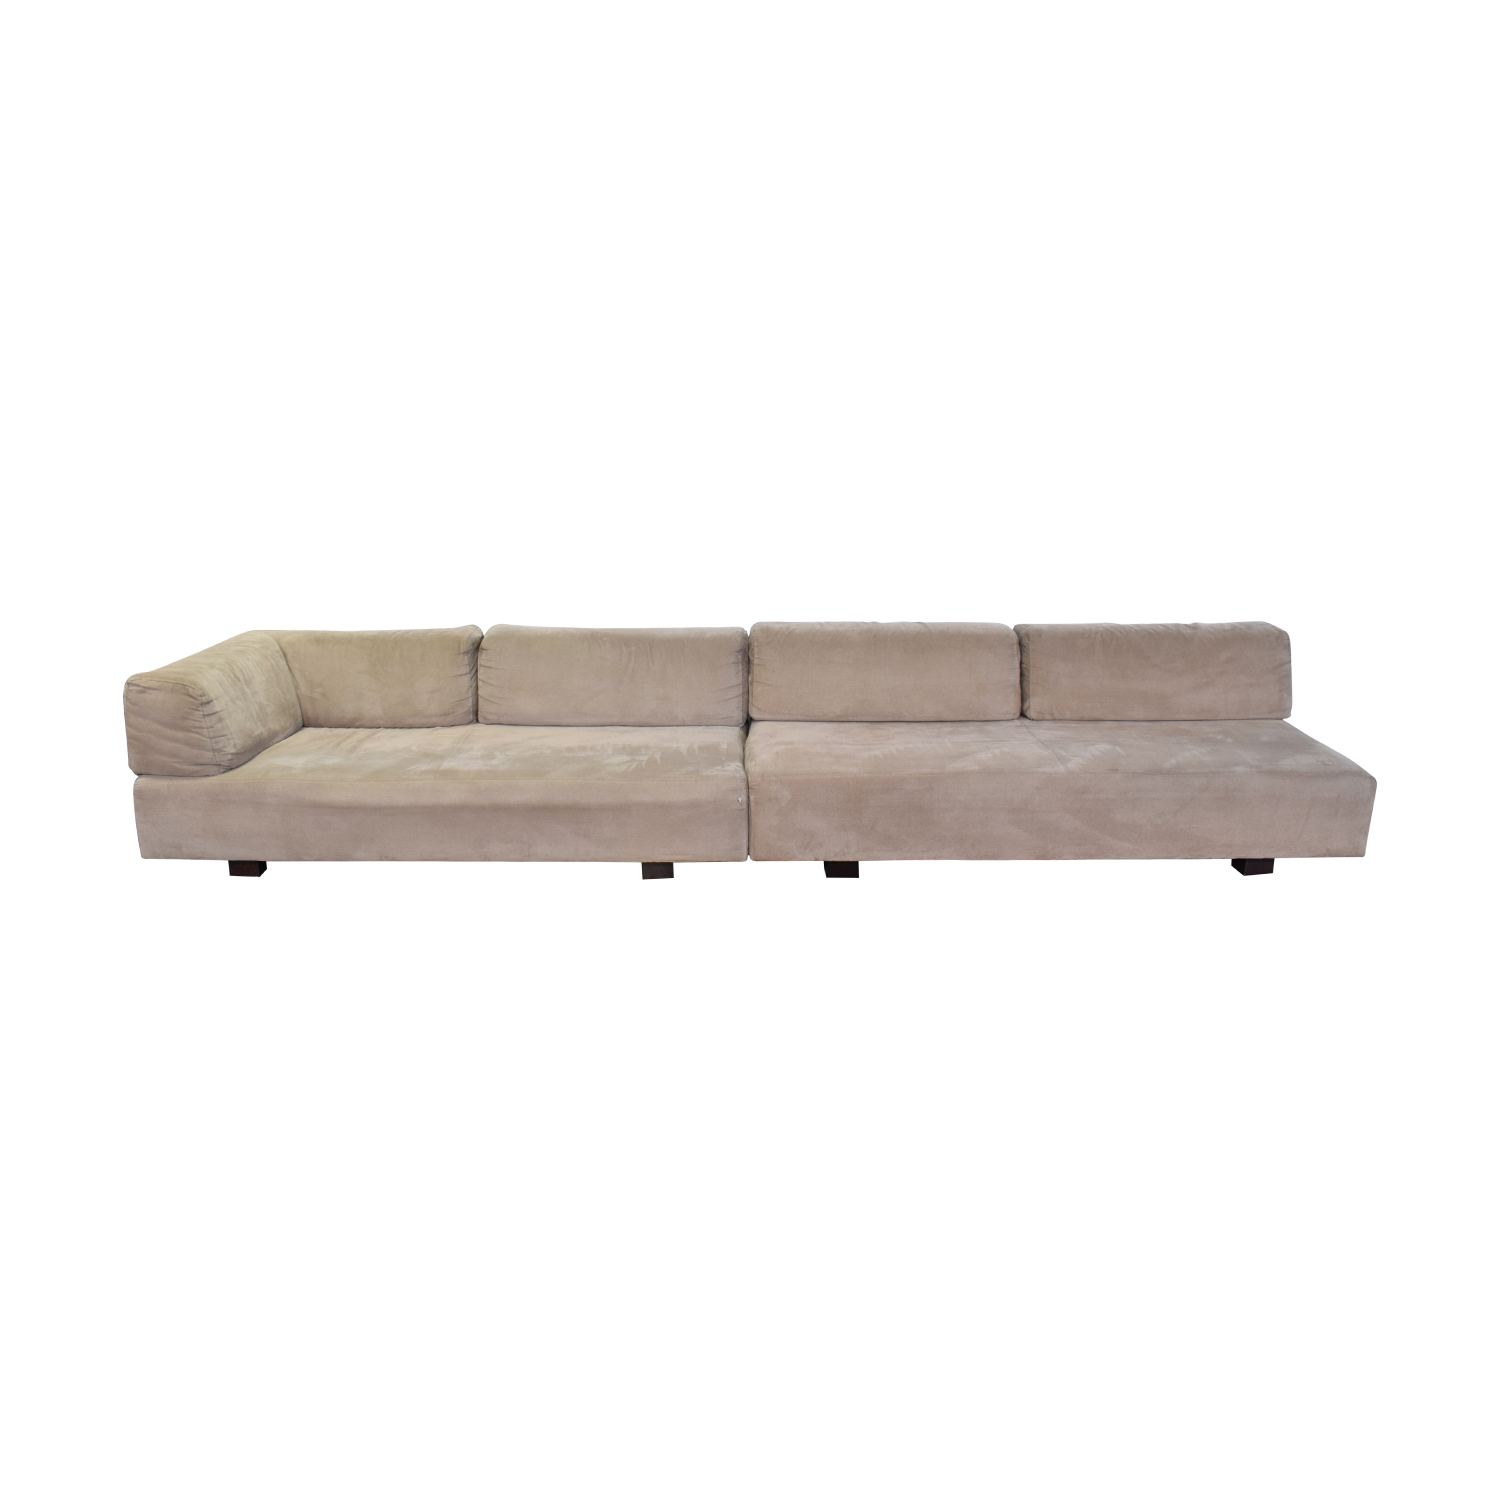 West Elm West Elm Tillary Beige L-Shaped Sectional for sale